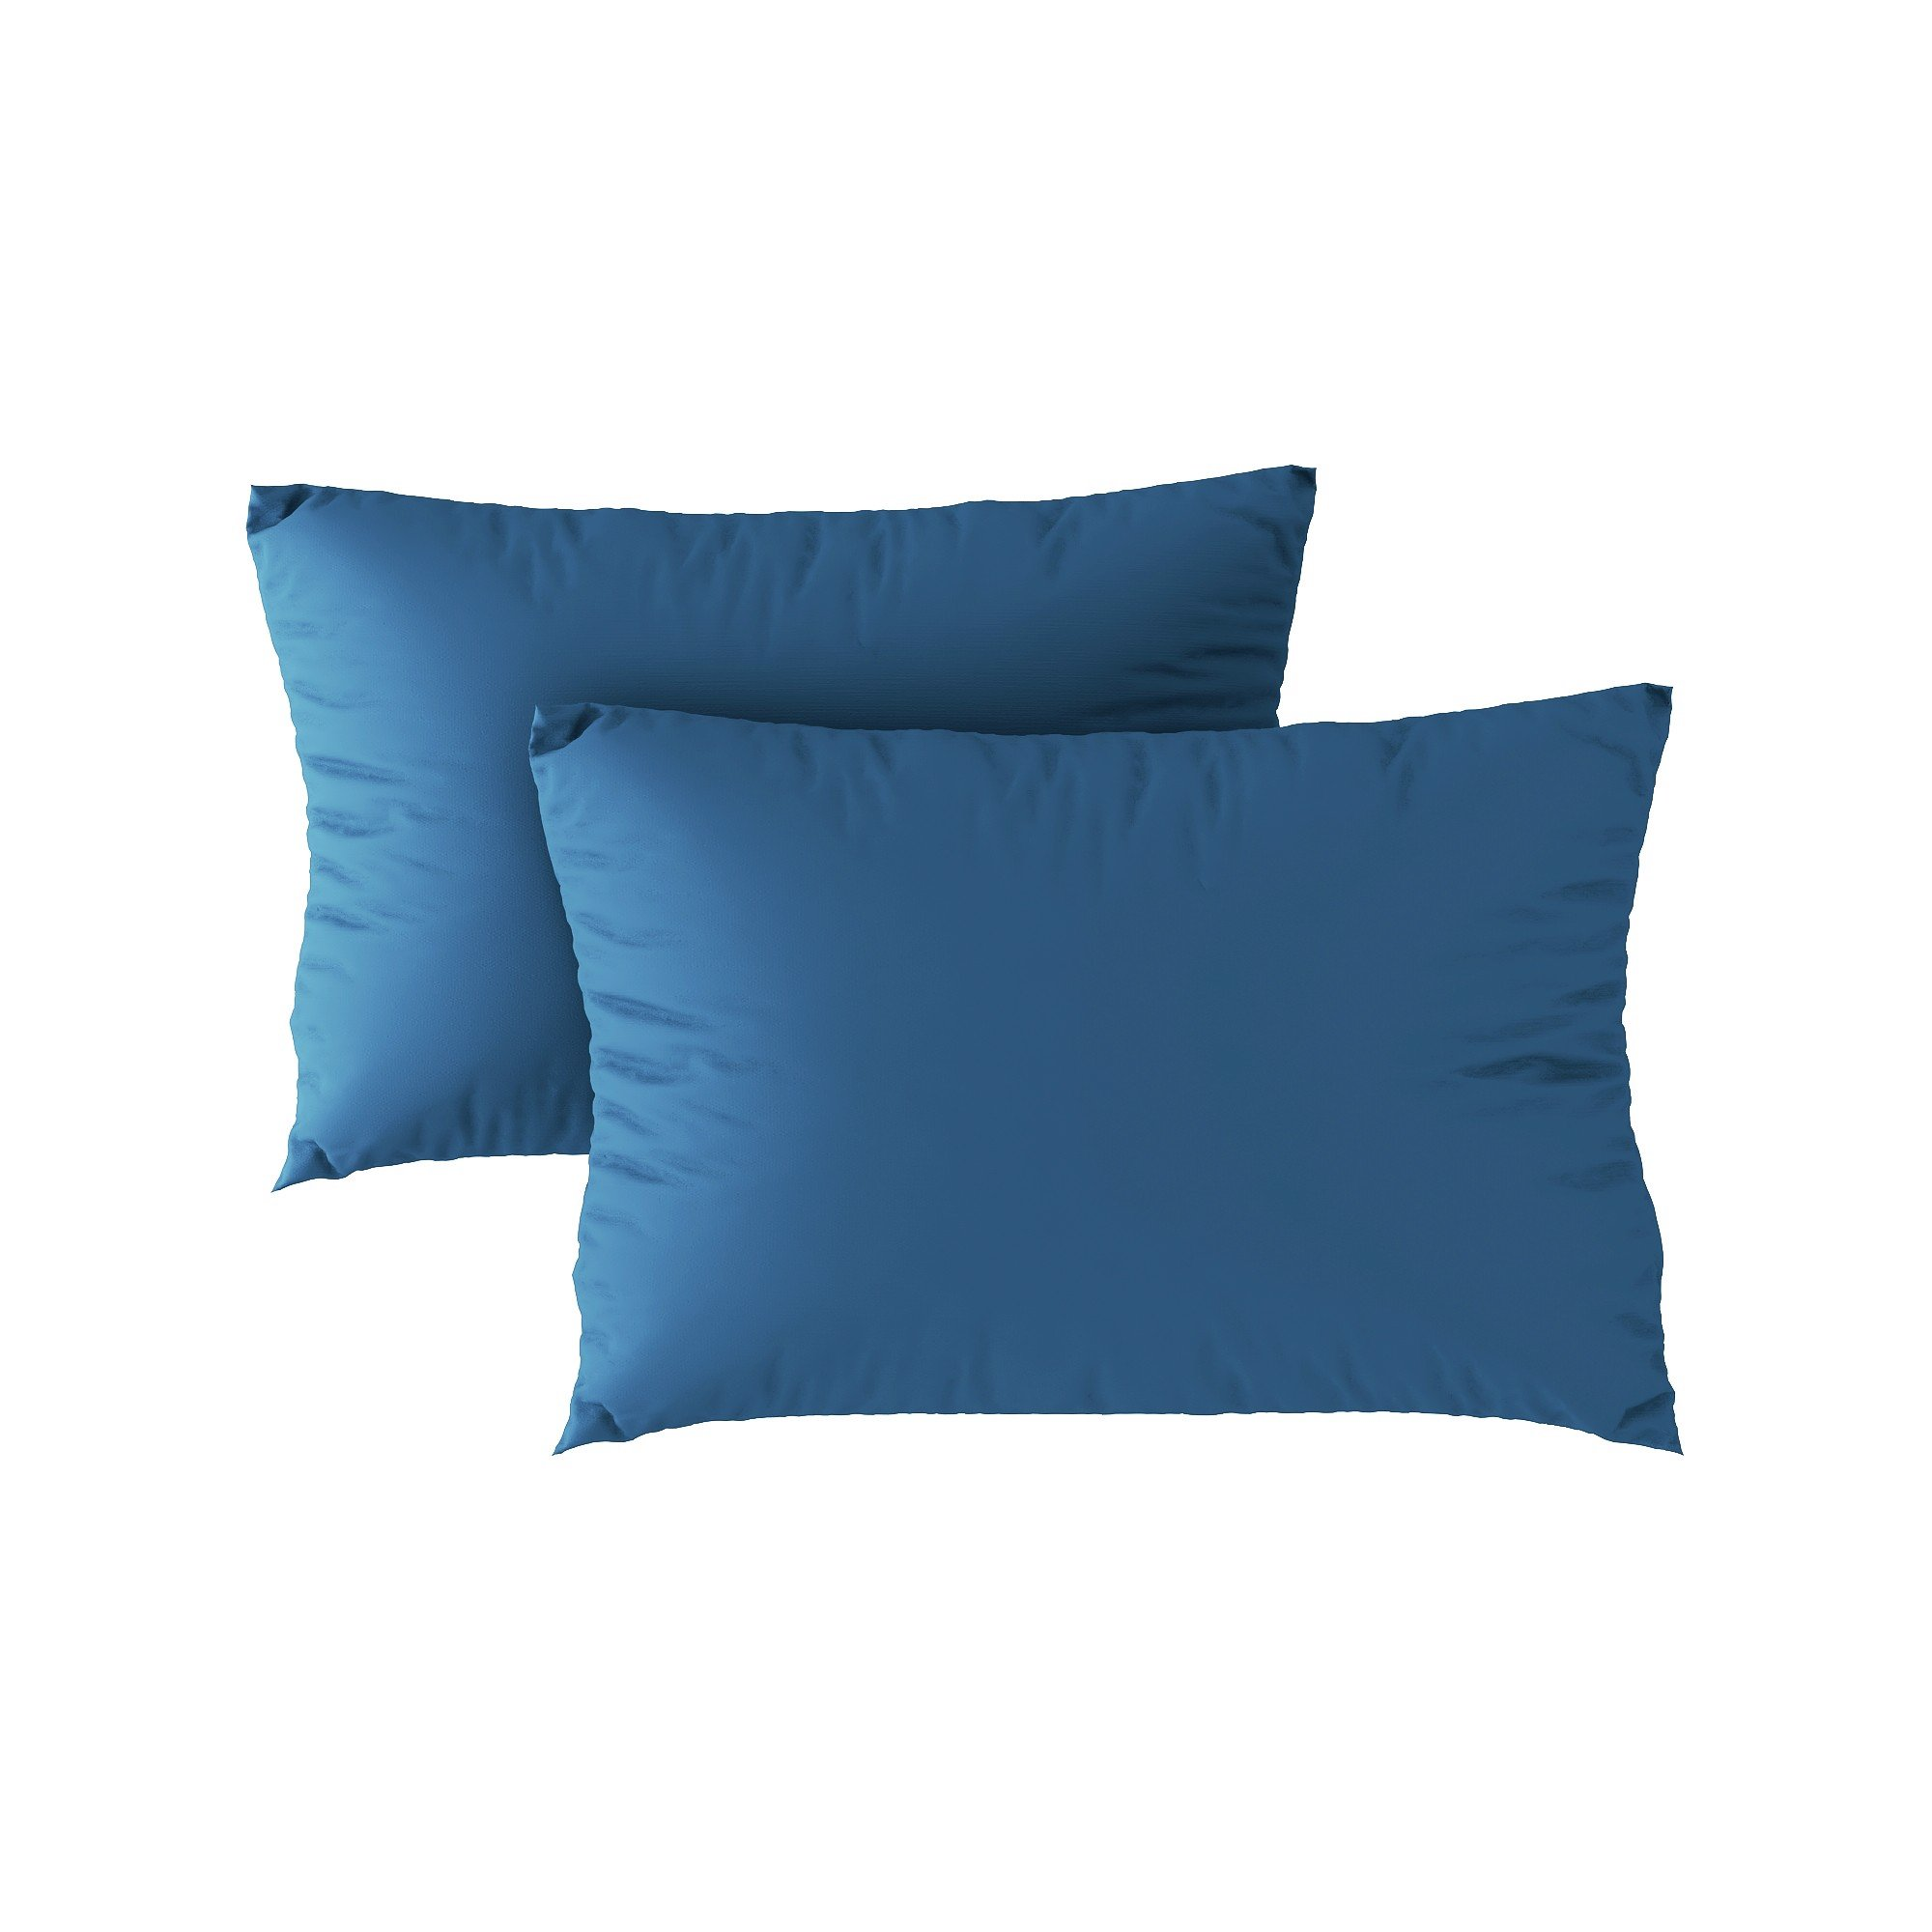 Standard pillow case 19 Habour blue (2pcs)